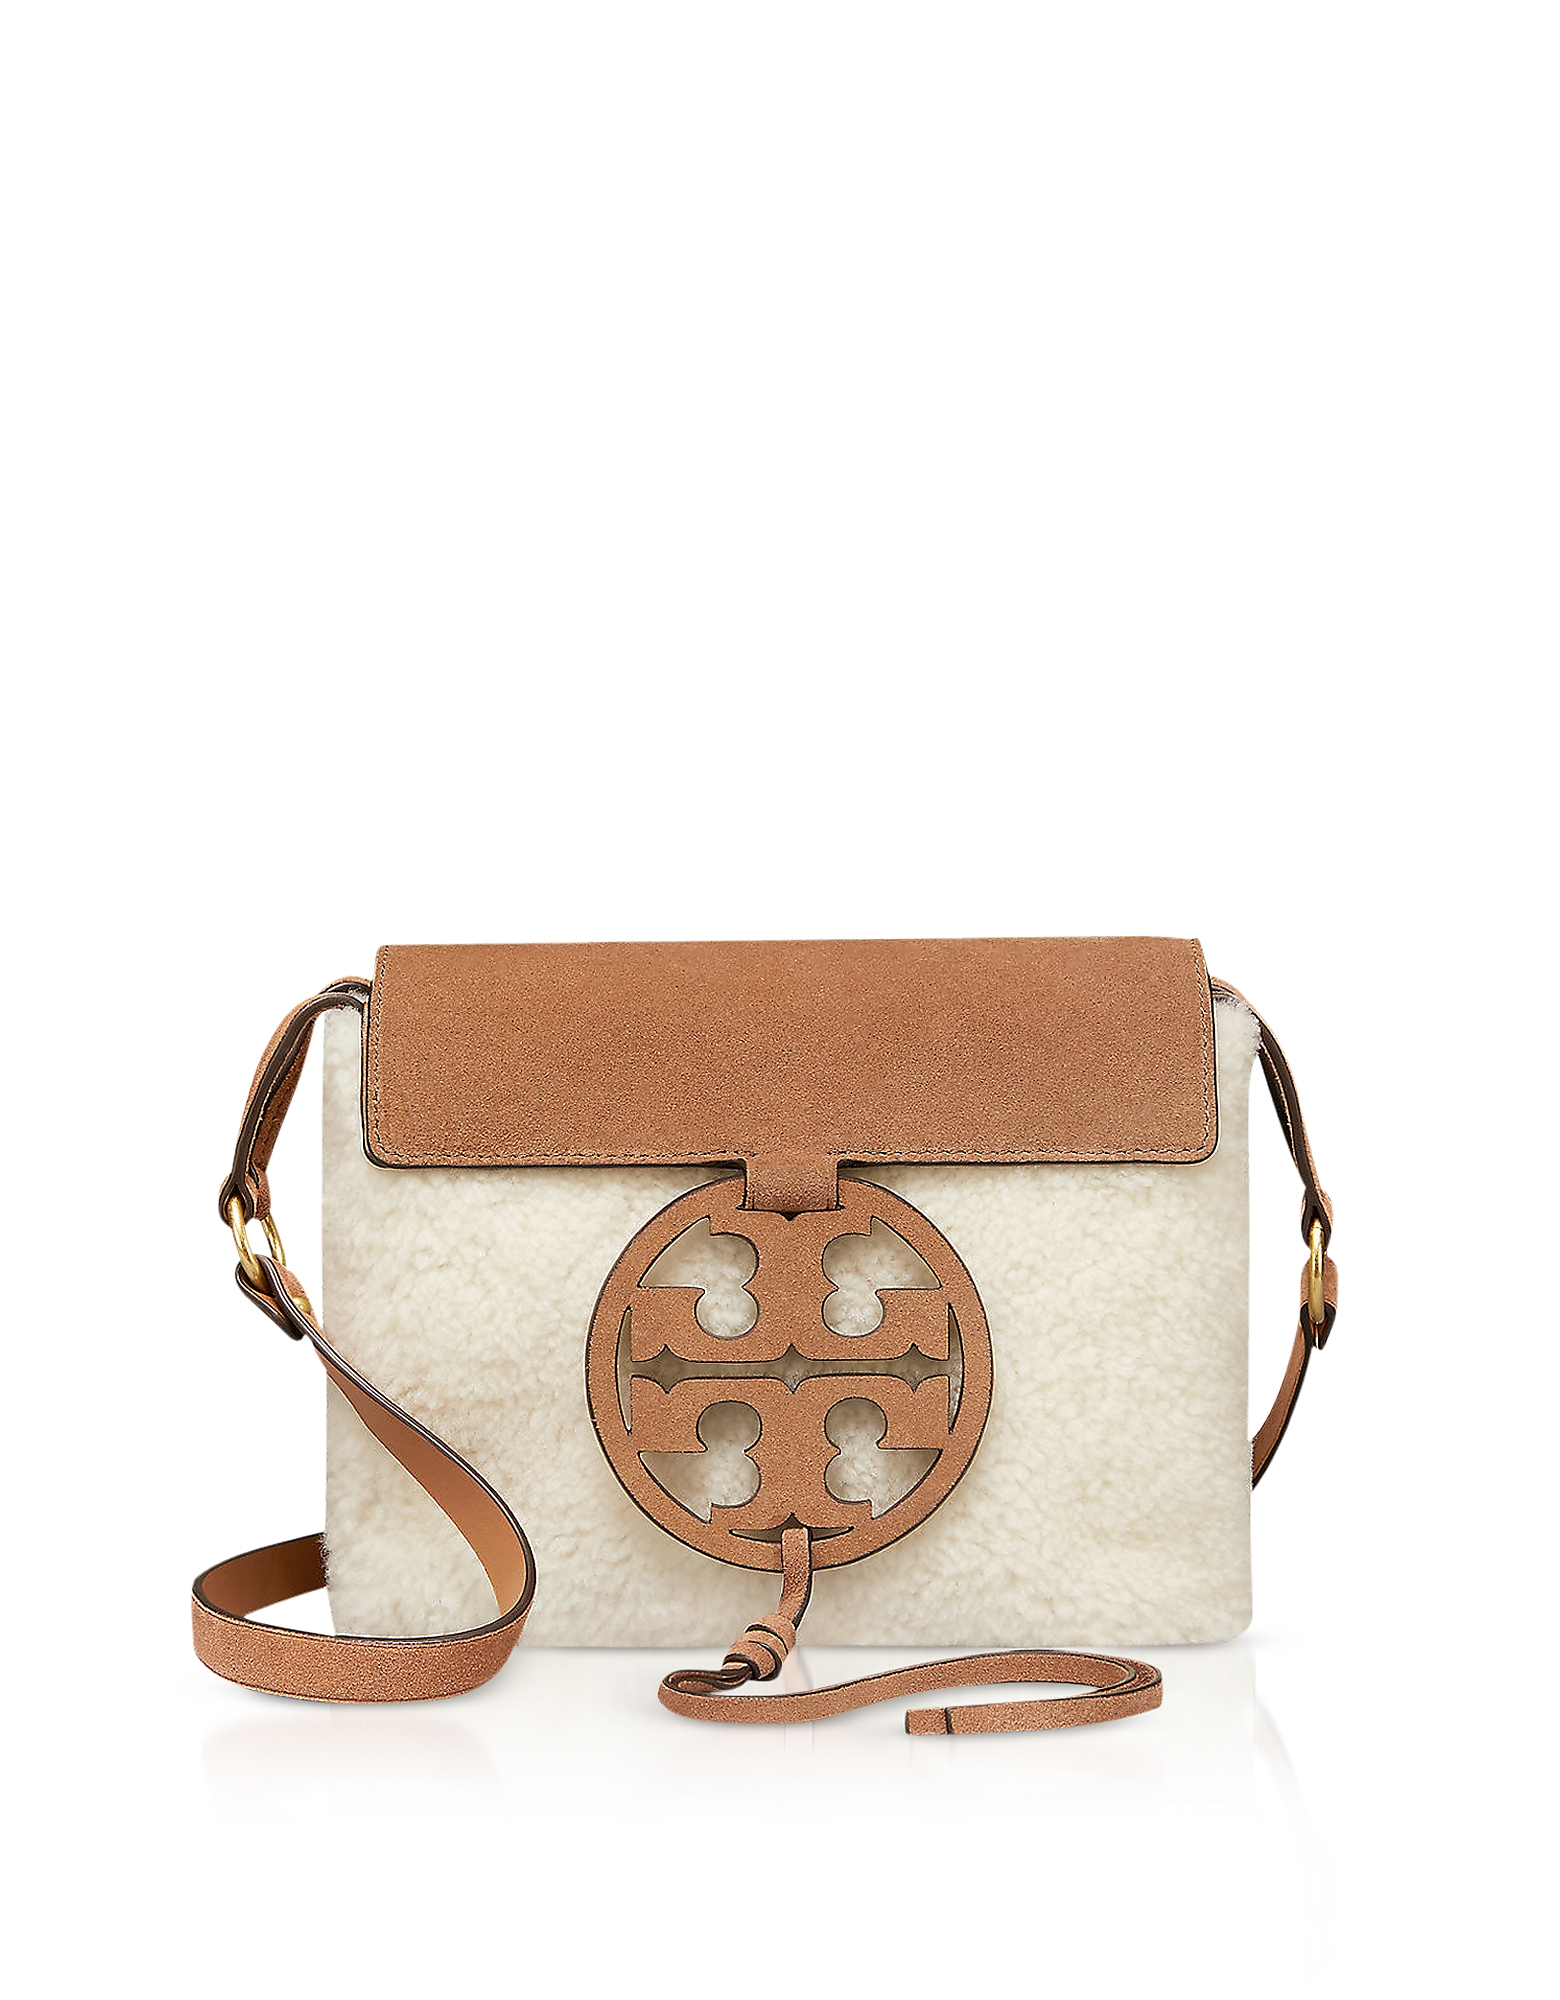 FESTIVAL BROWN SHEARLING AND LEATHER MILLER CROSSBODY BAG